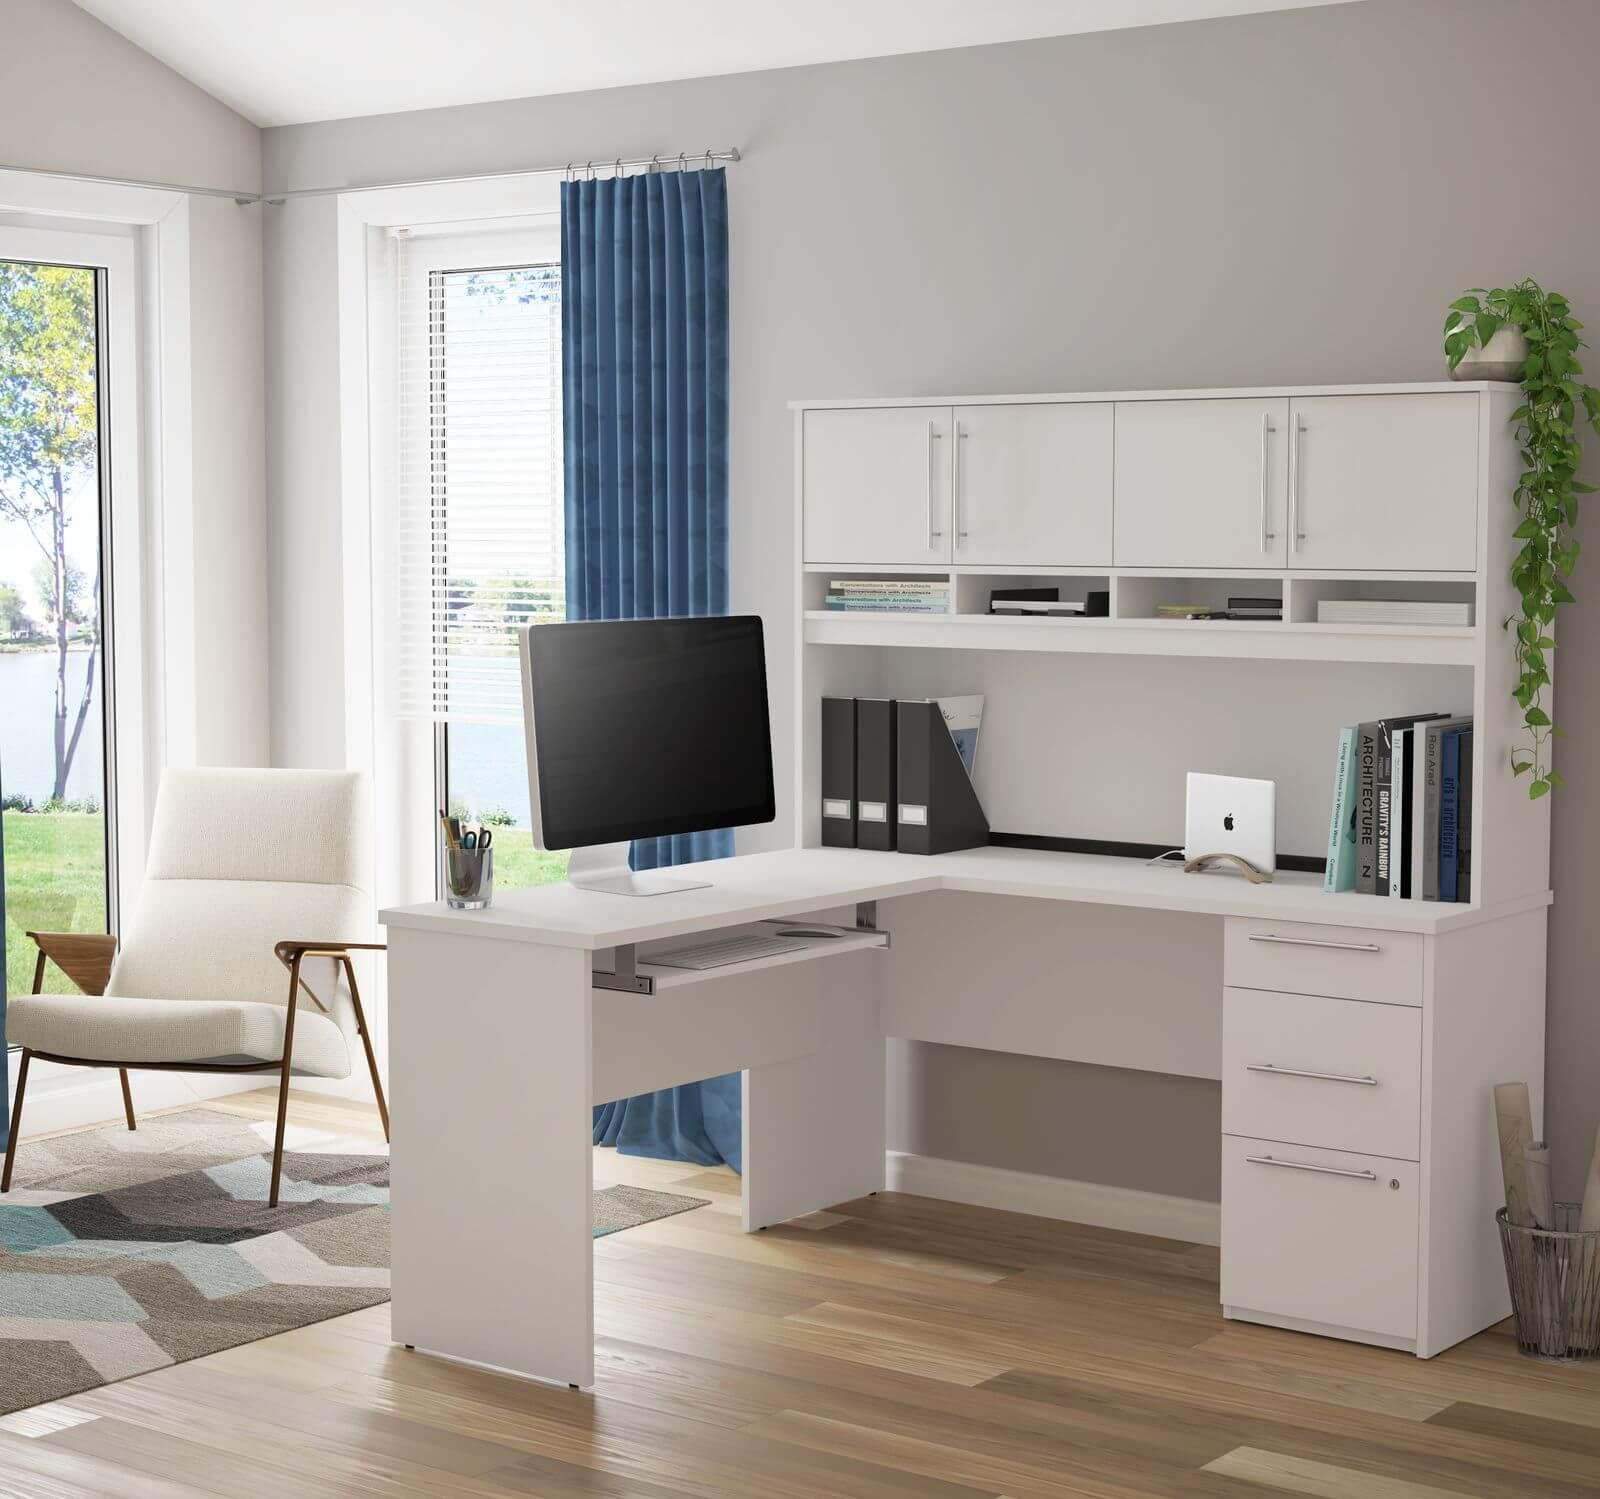 How to Create a Home Office on a Budget with a Computer Desk